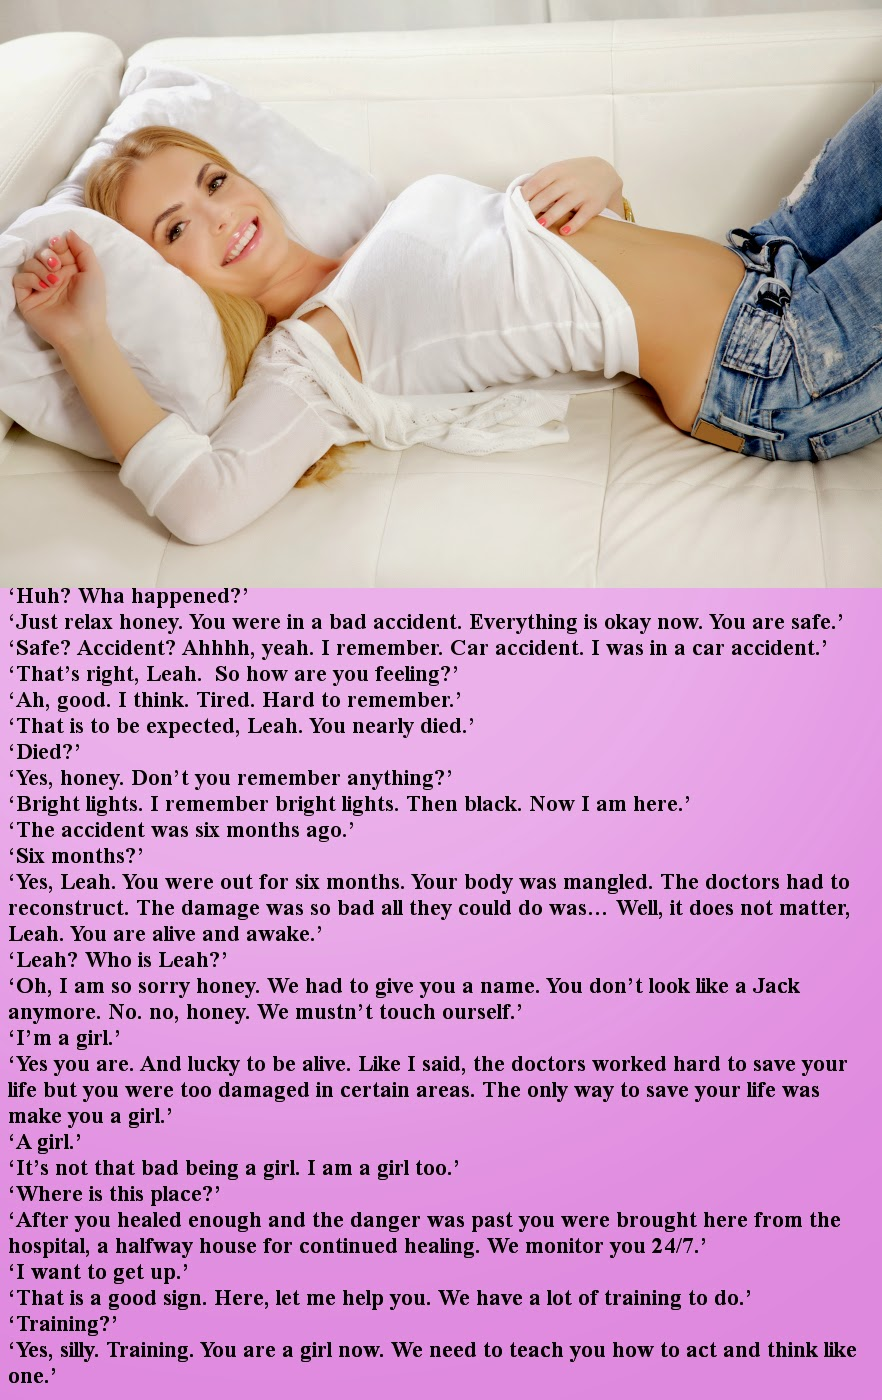 9 months pregnant honey moon part 1 - 1 part 7